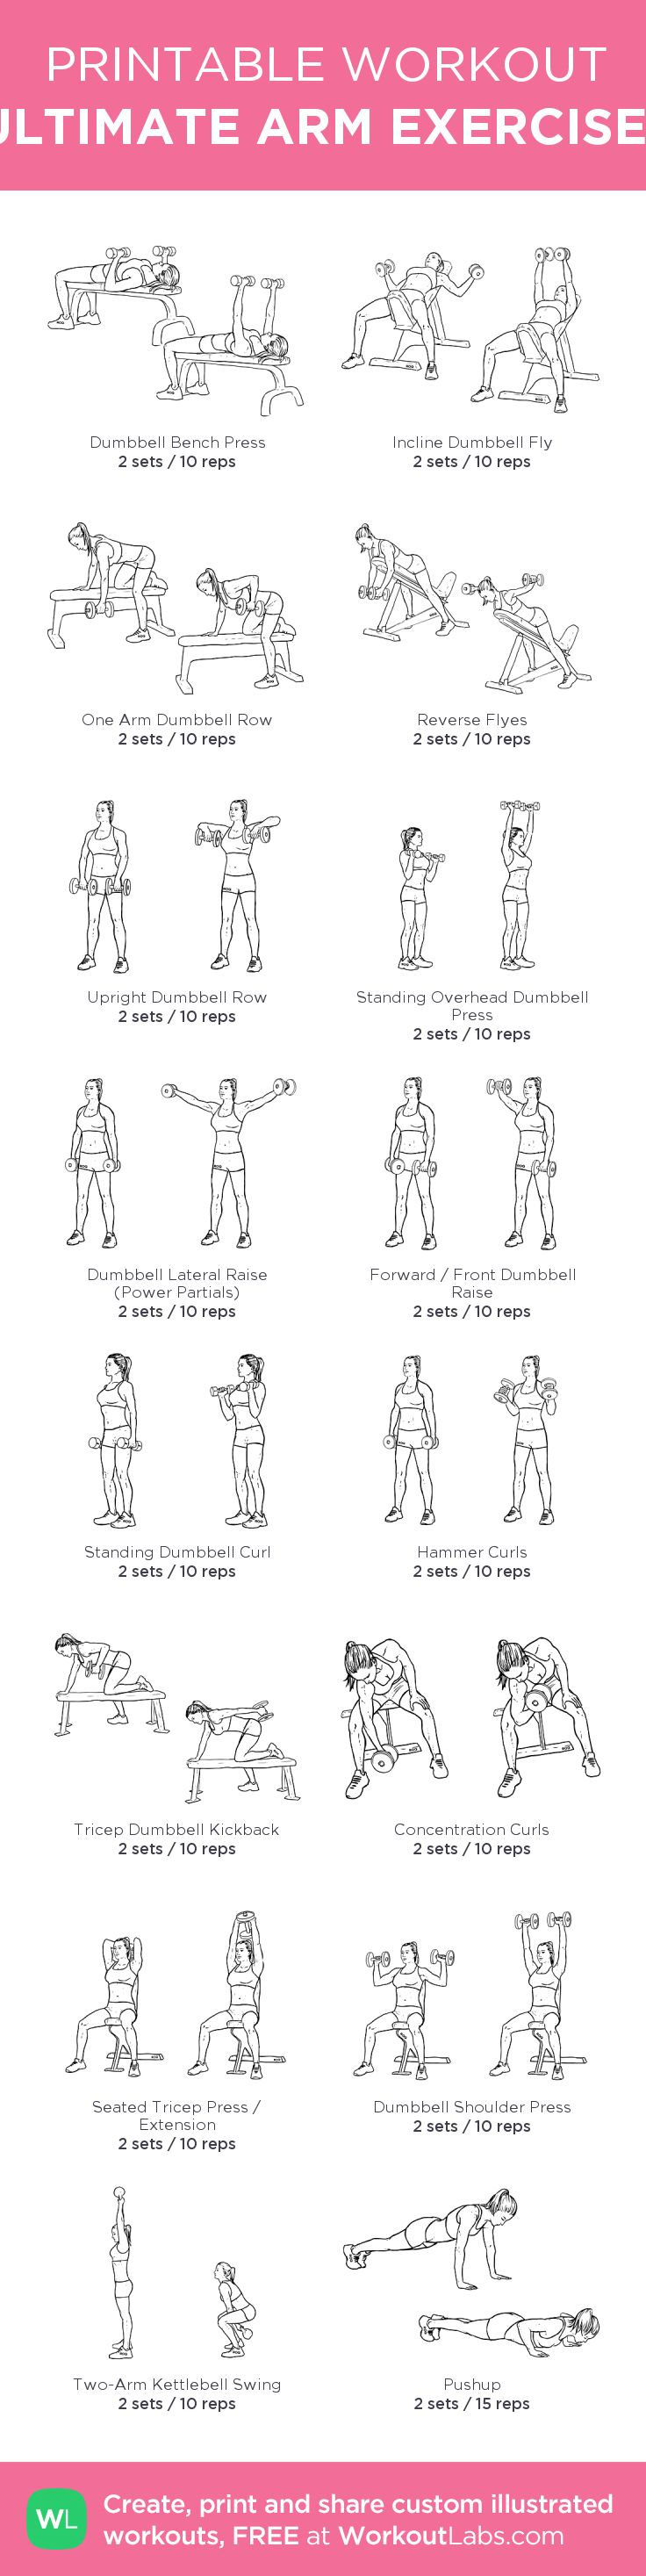 ULTIMATE ARM EXERCISES: my custom printable workout by @WorkoutLabs #workoutlabs #customworkout http://www.weightlossjumpstar.com/exercise-to-lose-weight/